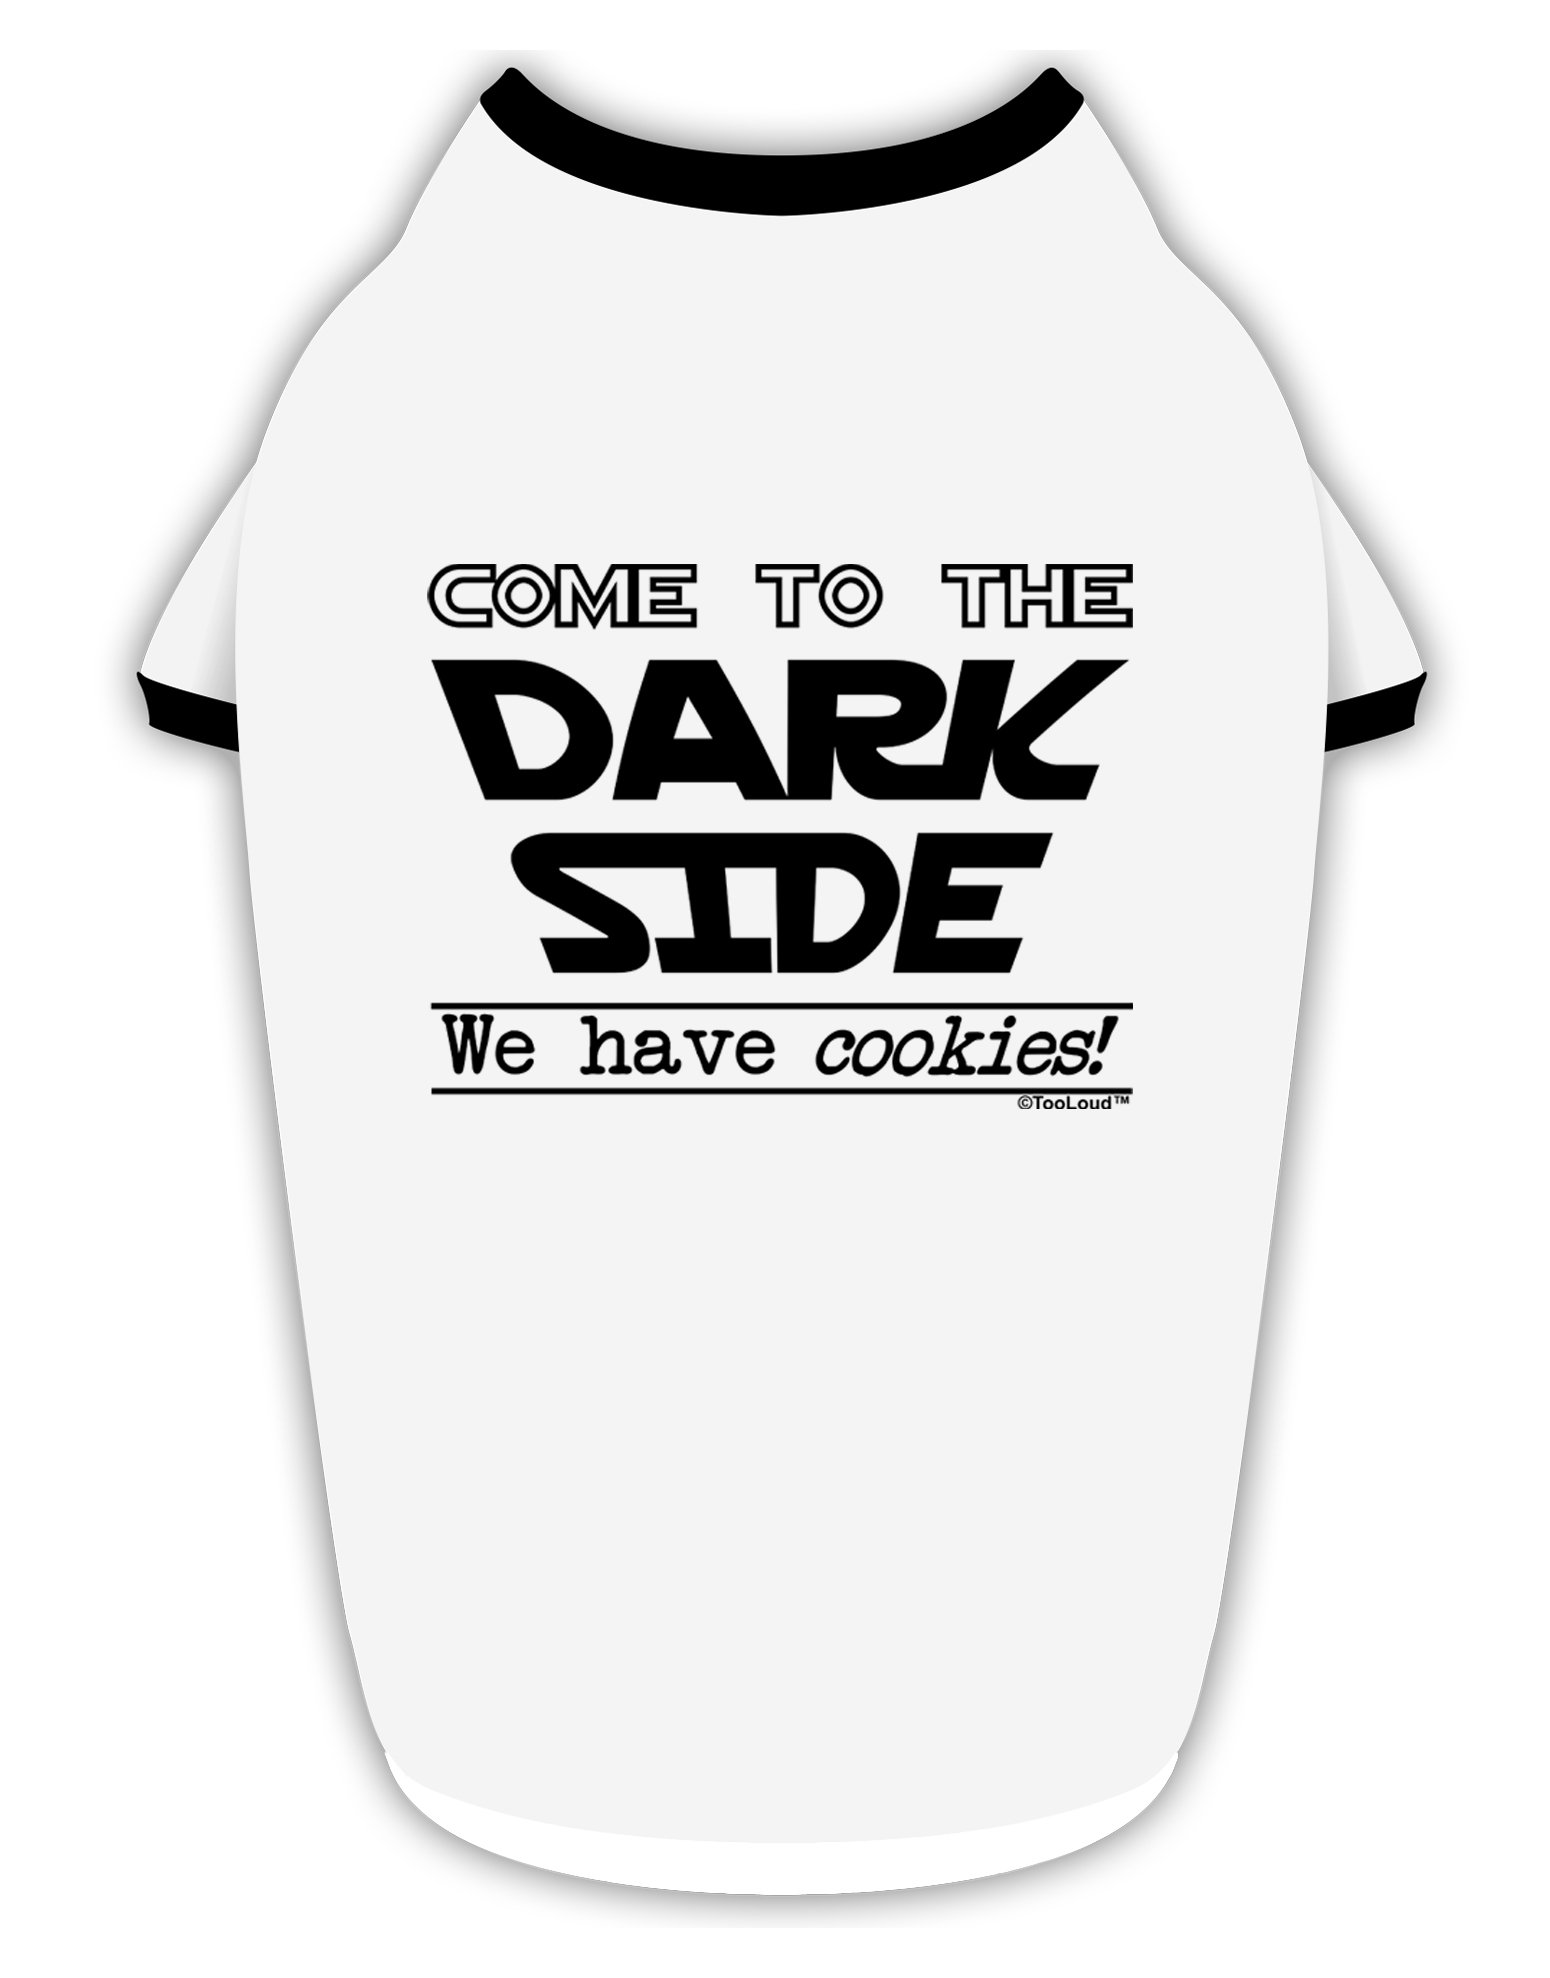 TooLoud Come To The Dark Side - Cookies Cotton Dog Shirt White with Black Medium